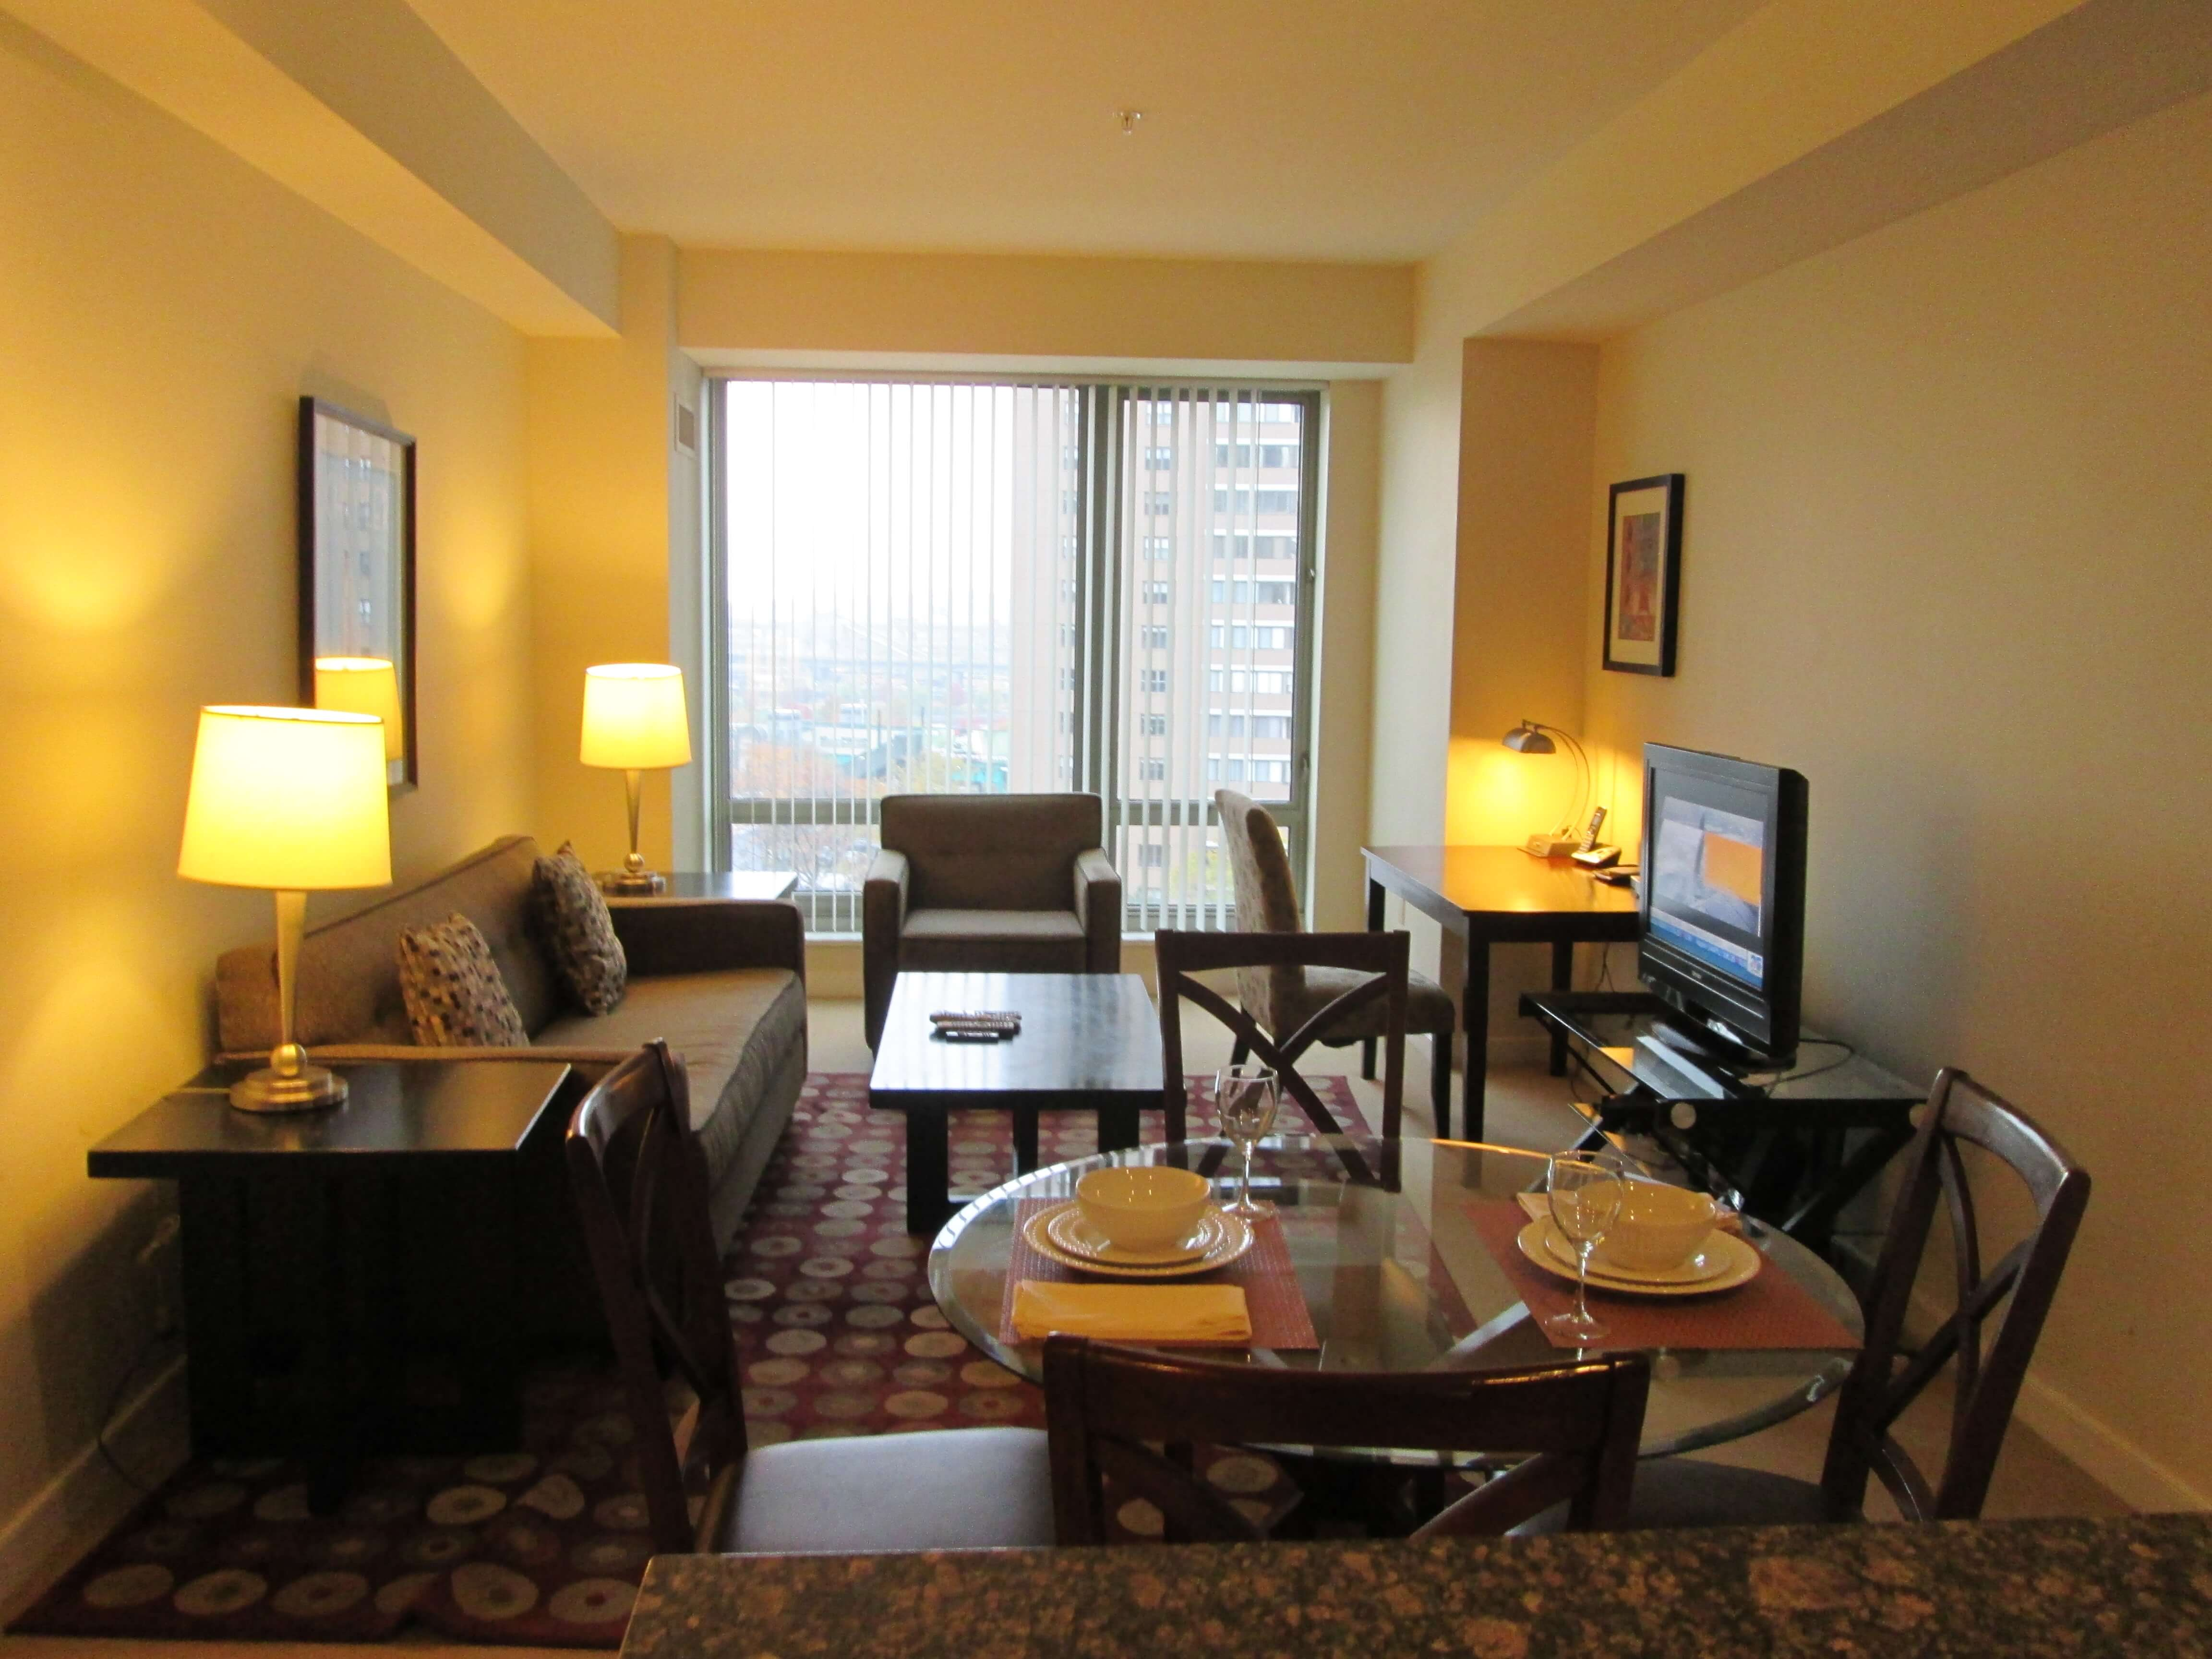 Beacon Hill Furnished 2 Bedroom Apartment For Rent 8580 Per Month Rental ID